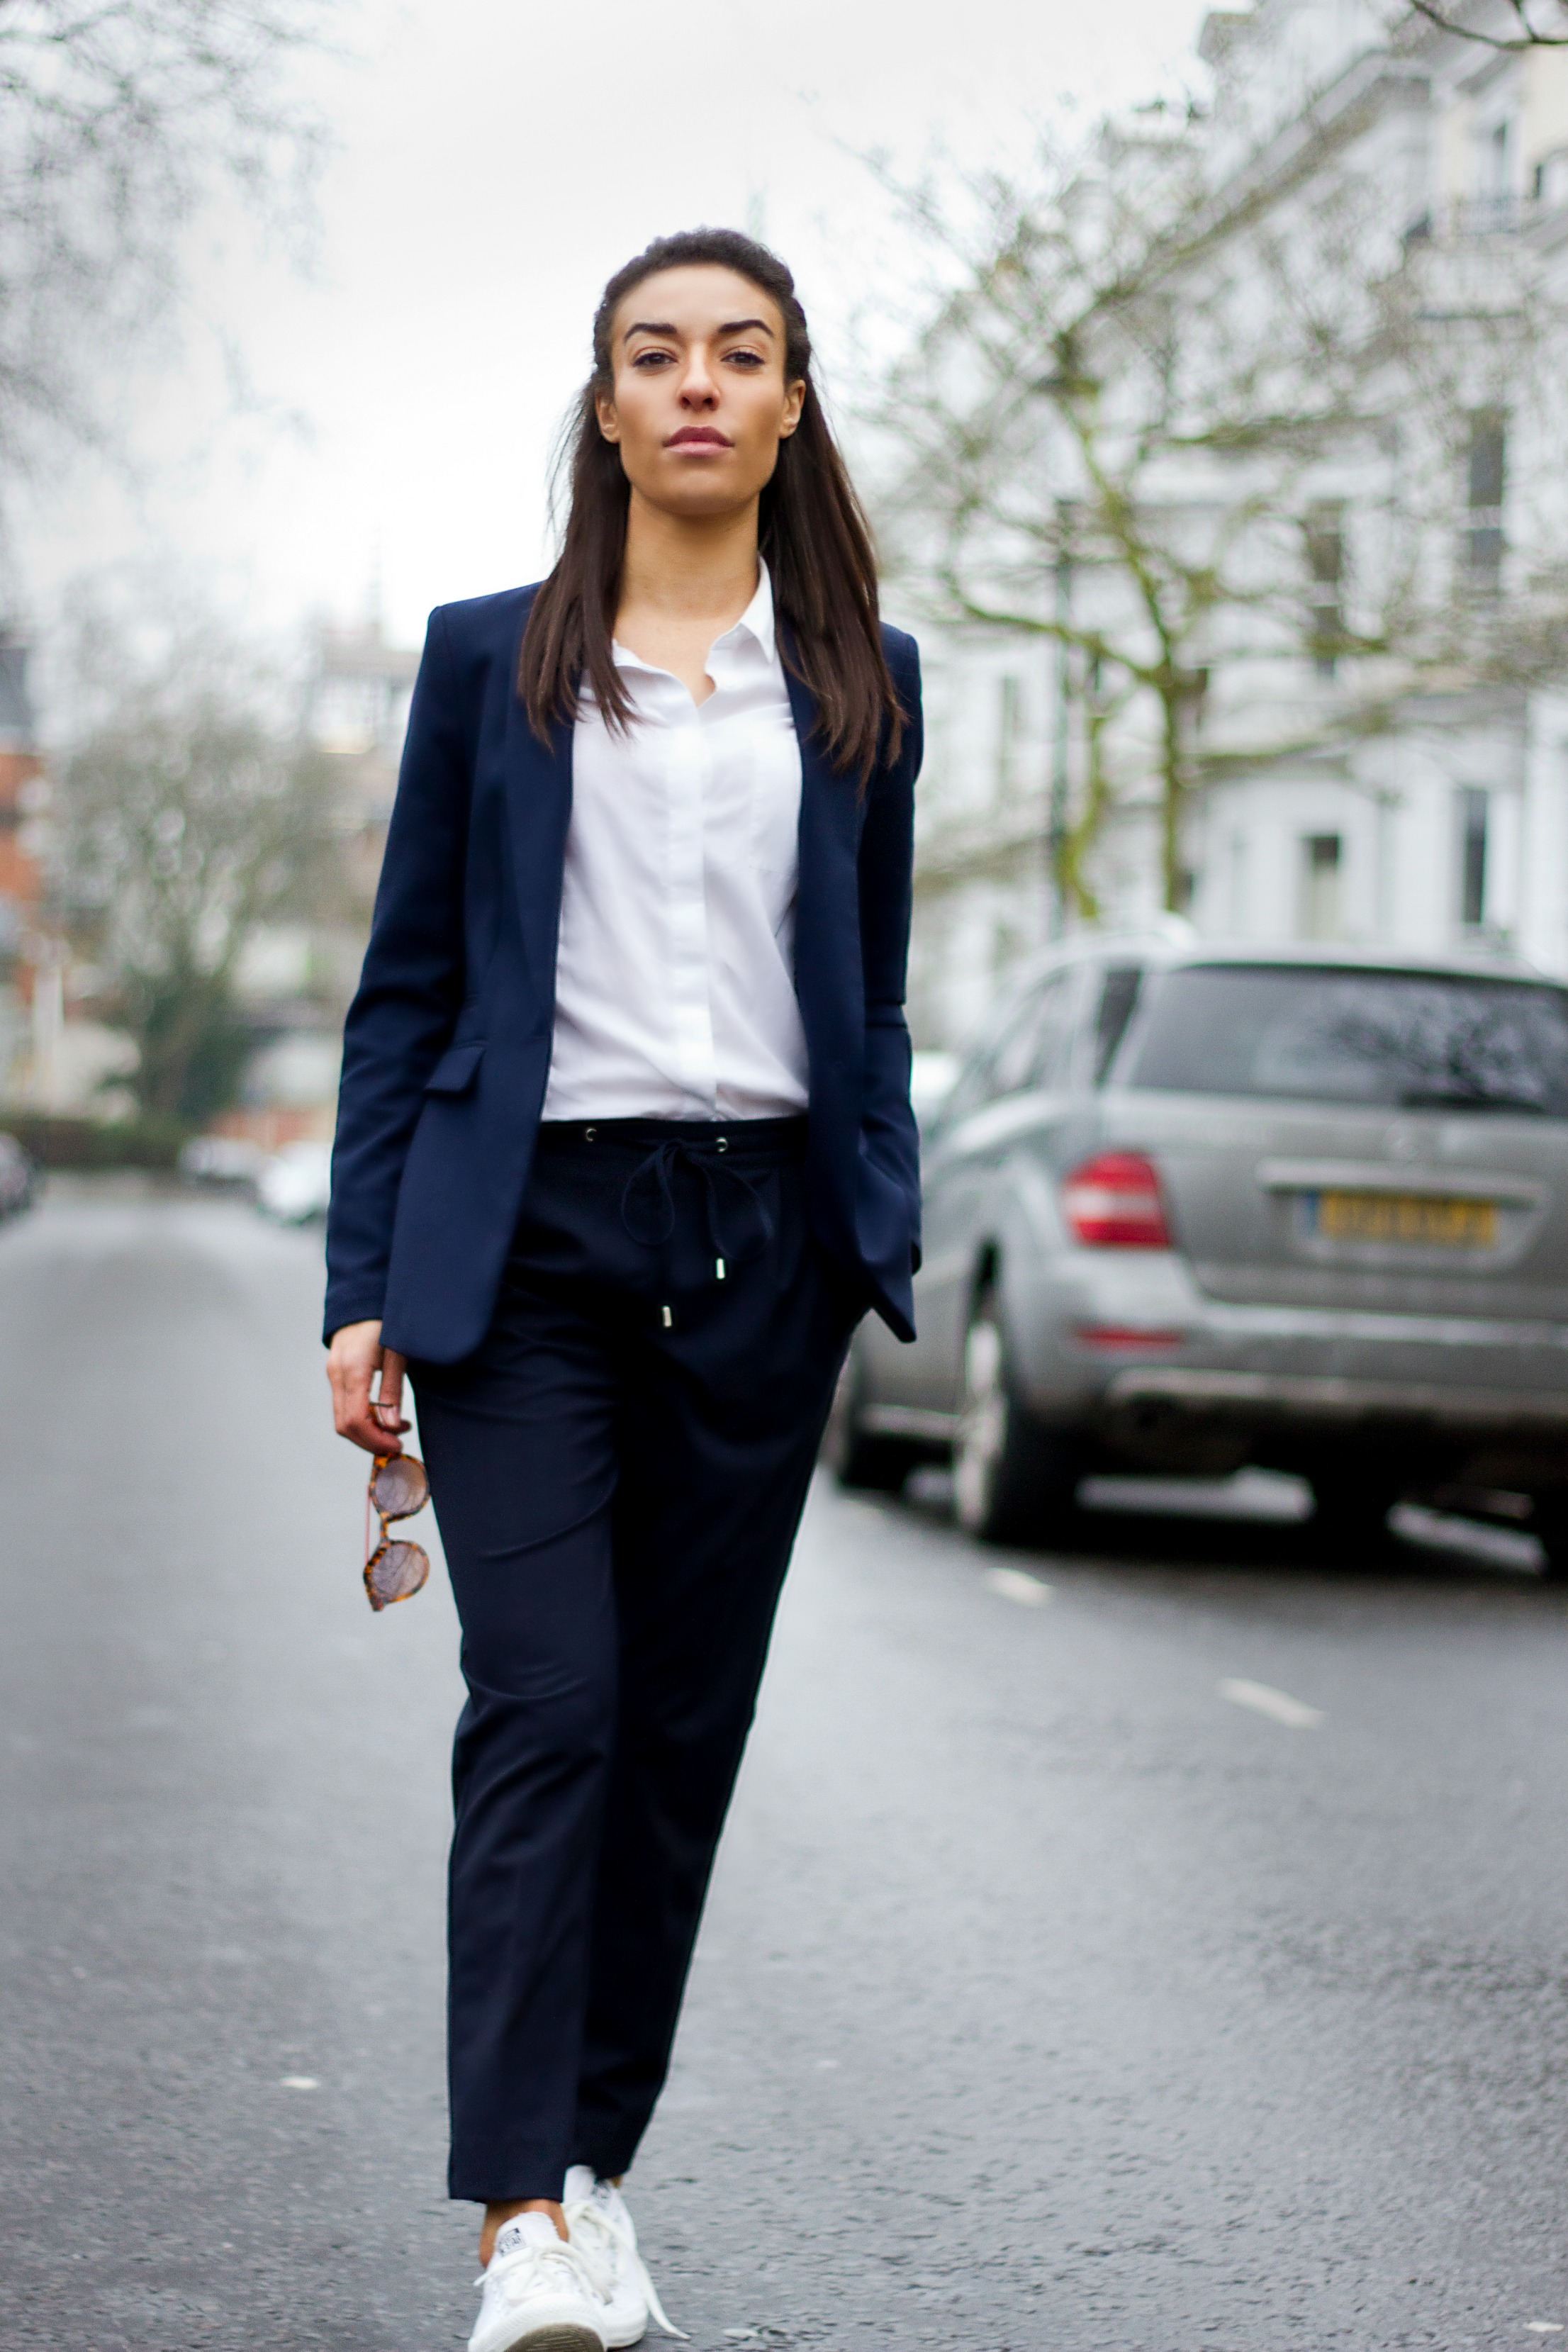 Corporate_Style_Story_Navy_Drawstring_Trousers_White_Shirt-Navy_Blazer_Holding_Sunglasses_In_Road_2212_3318